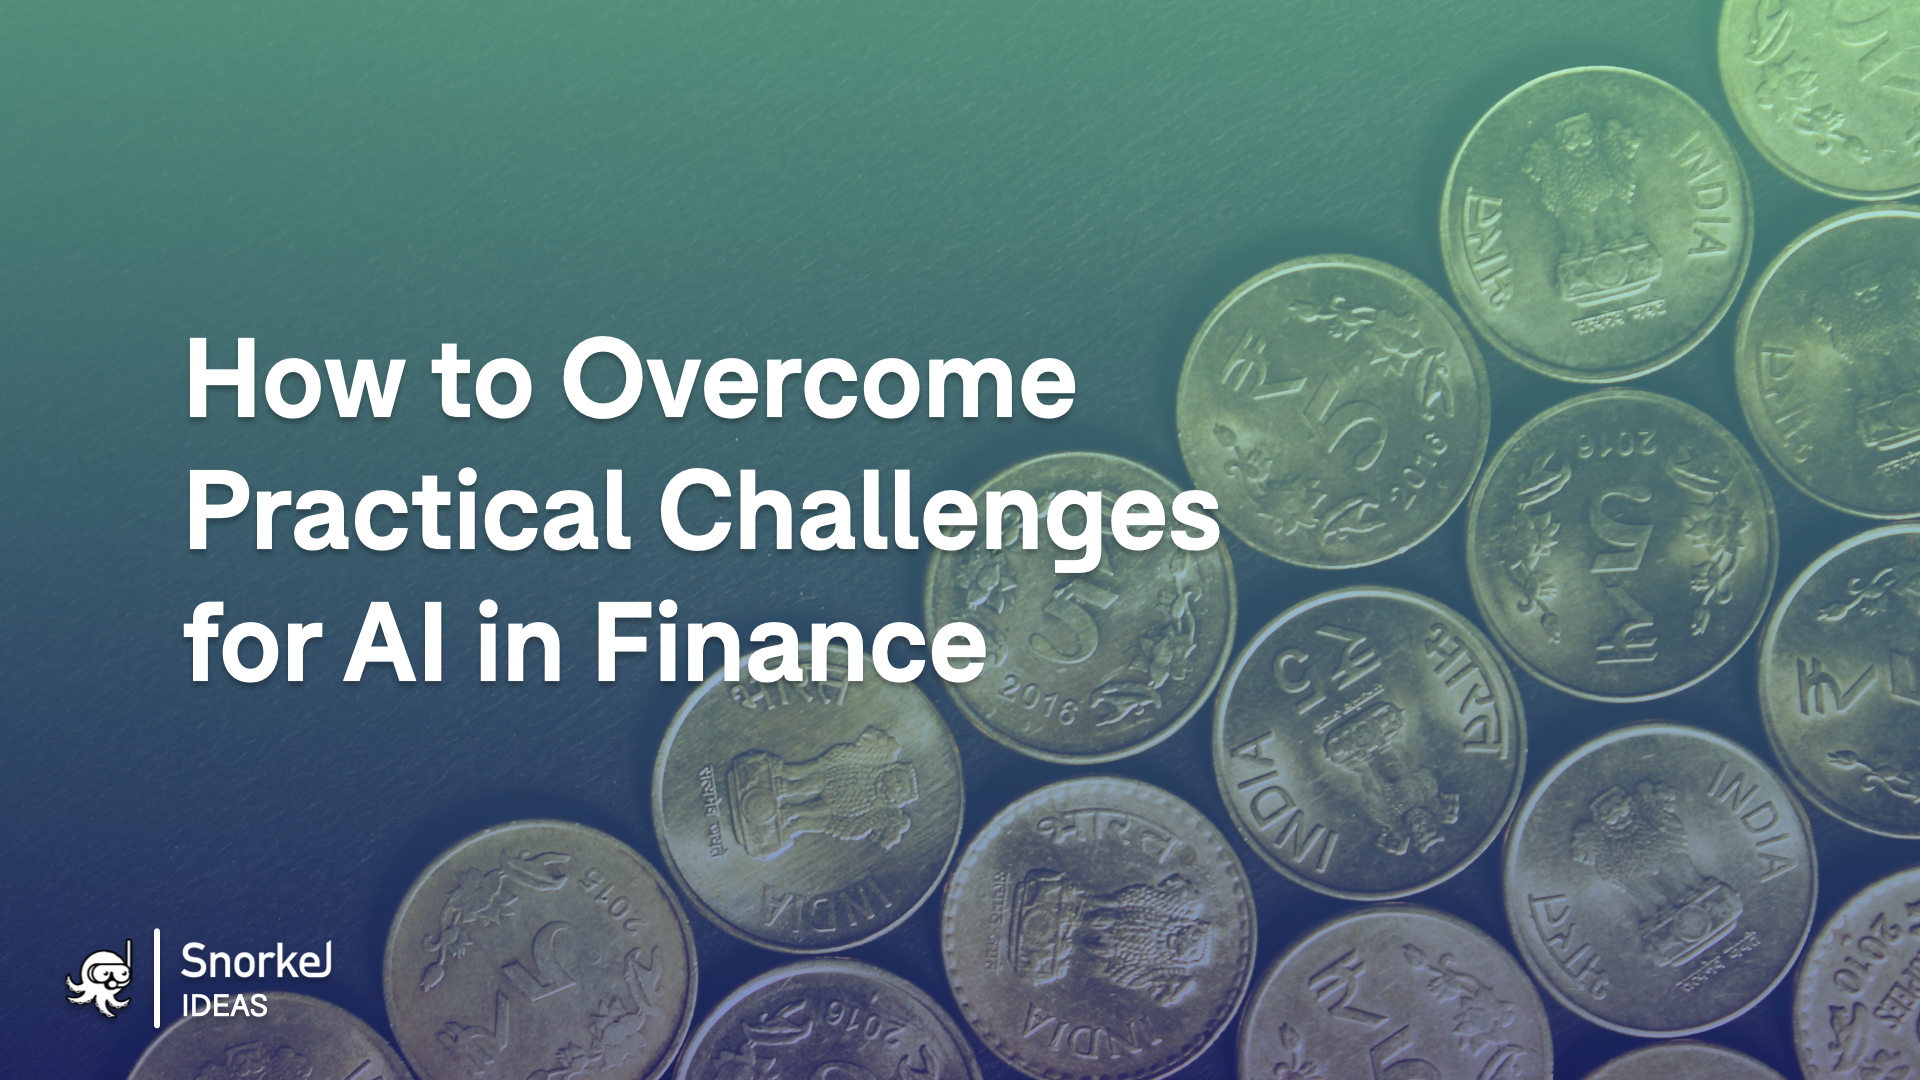 How to Overcome Practical Challenges for AI in Finance